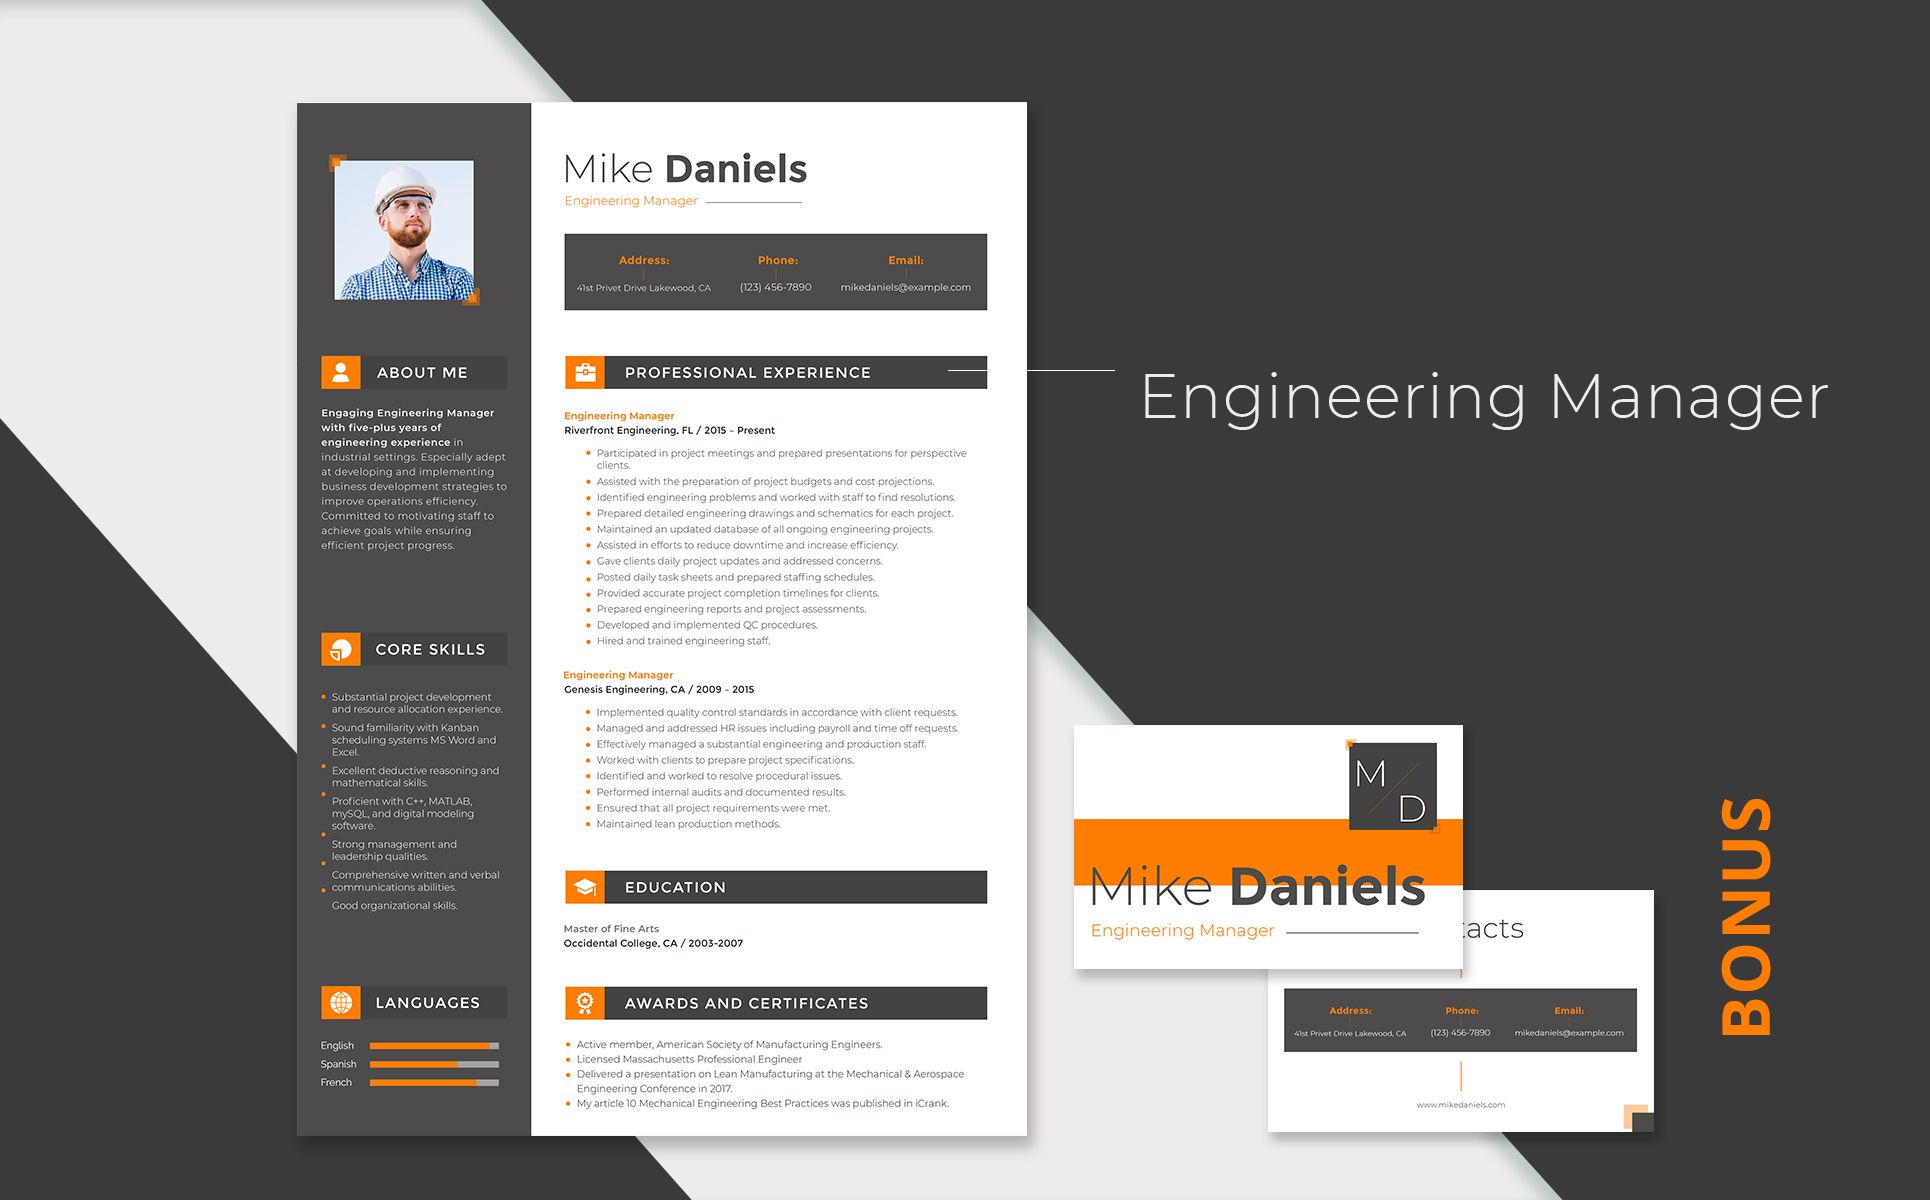 Mike Daniels Engineering Manager Resume Template 66446